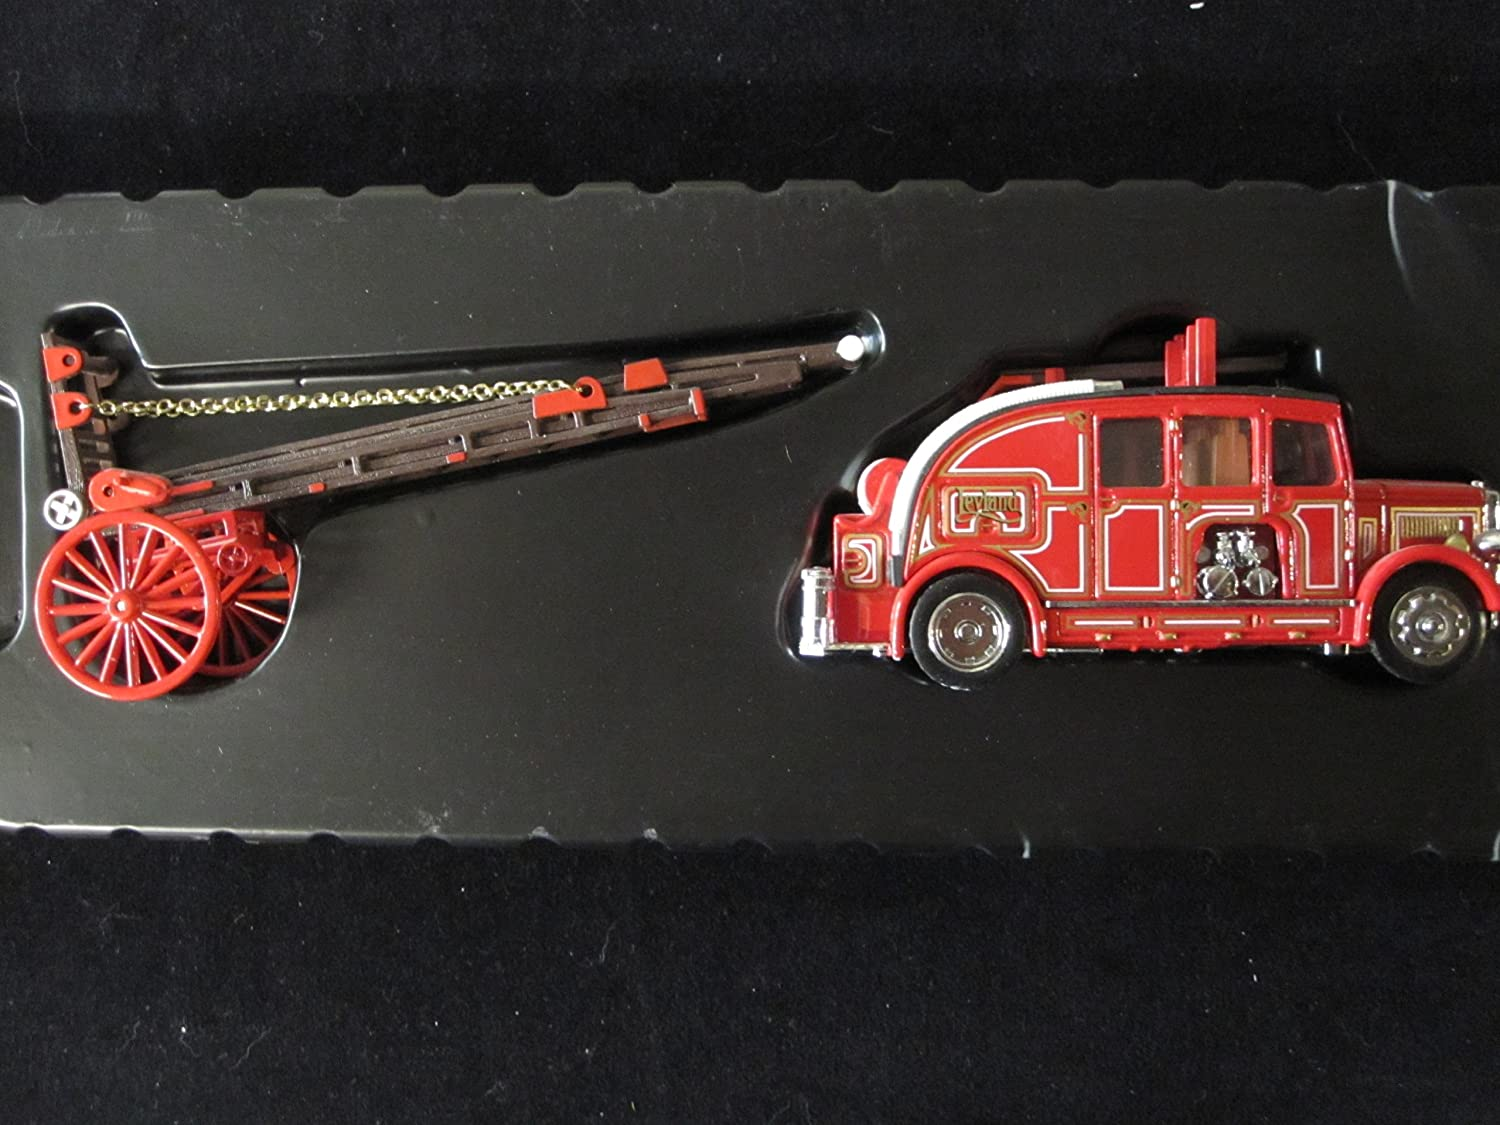 1936 Leyland Cub FK-& Fire Engine Matchbox Fire Engine Models of Yesteryear Series